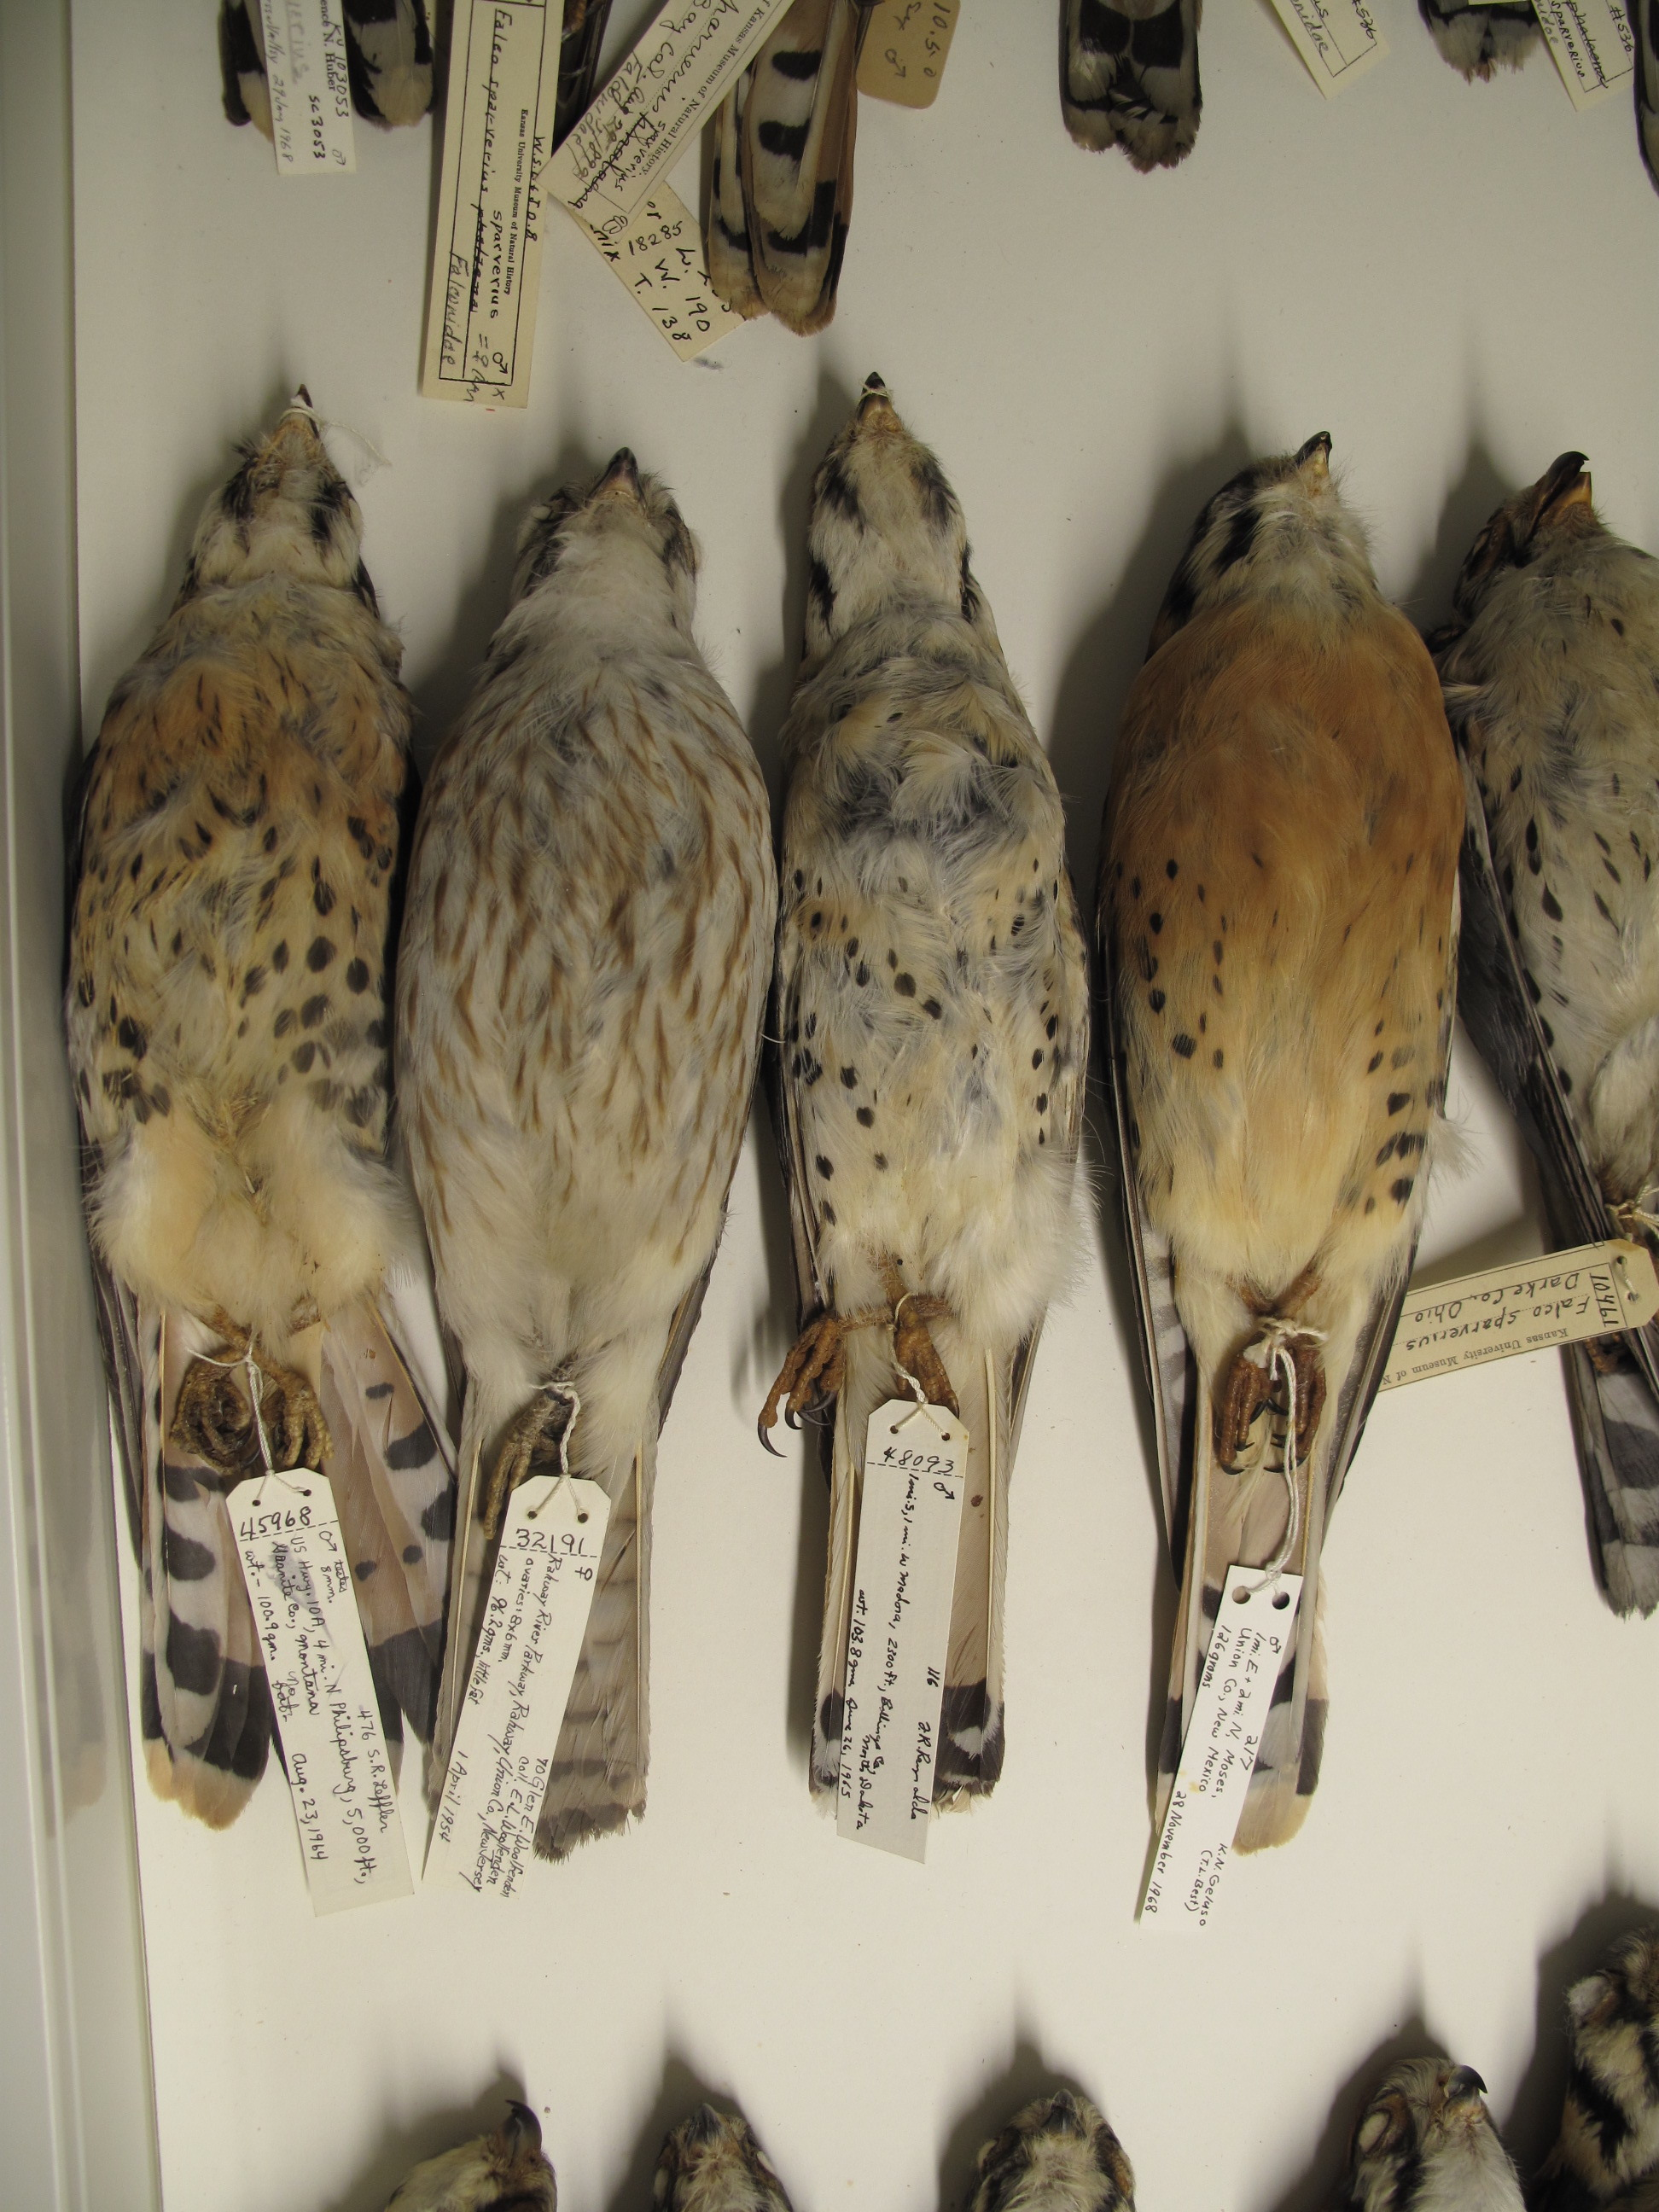 Specimens of the American Kestrel in the KU Biodiversity Institute, photograph by Mark Robbins.